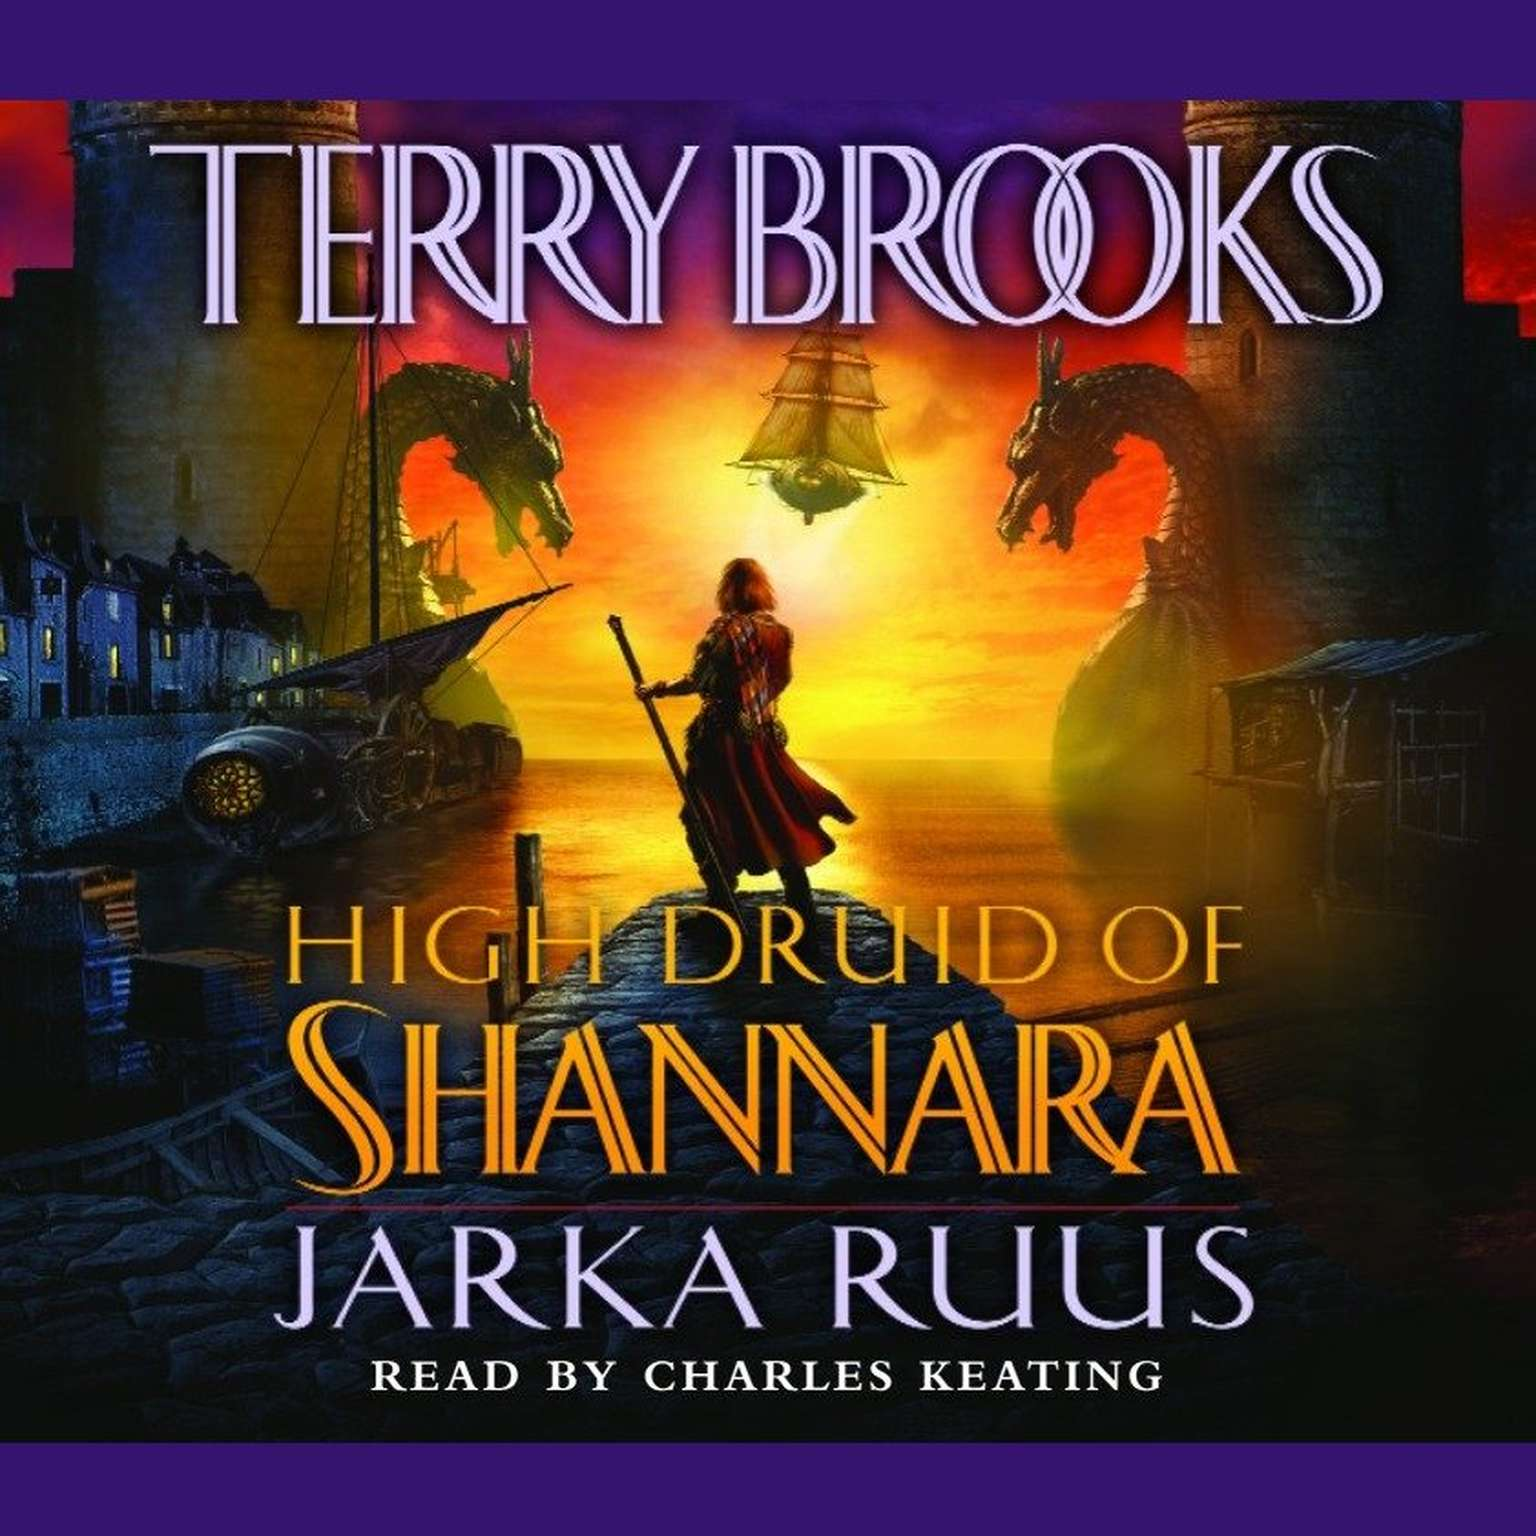 Printable High Druid of Shannara: Jarka Ruus Audiobook Cover Art